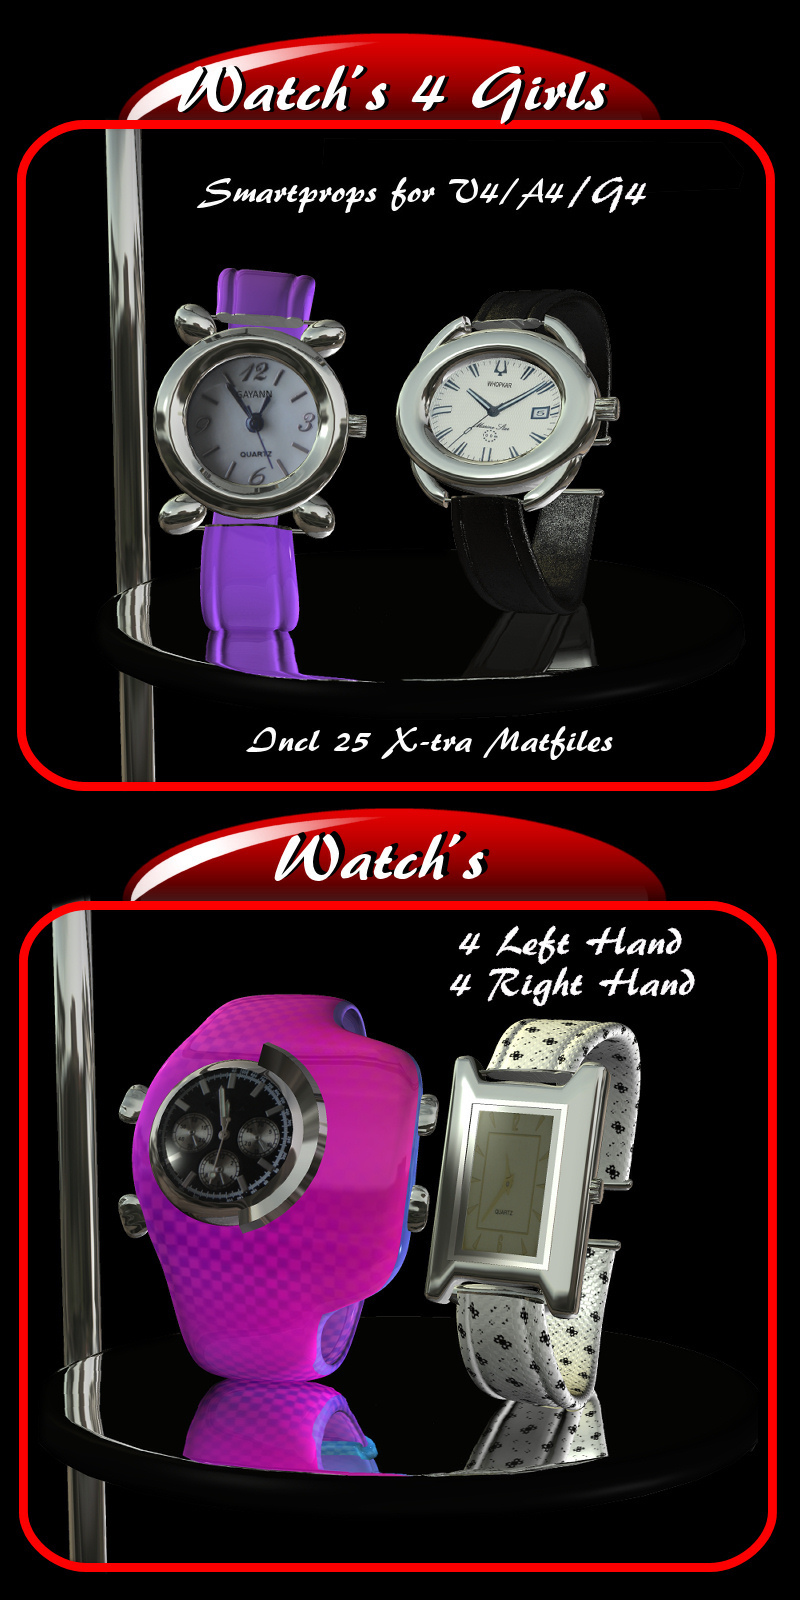 Watchs 4 Girls